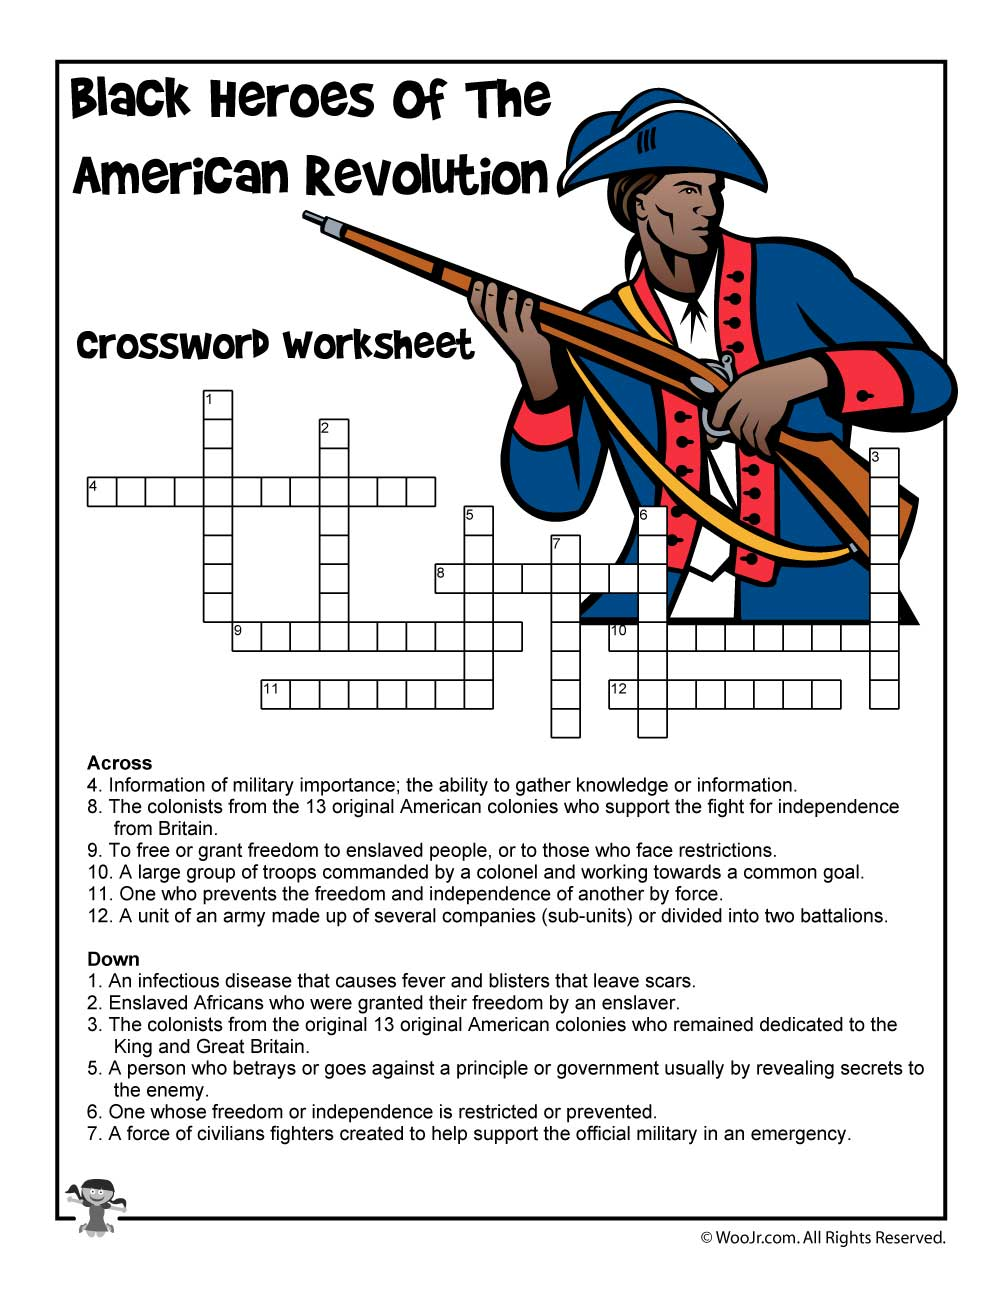 Black Heroes Of The Revolutionary War Crossword Worksheet Woo Jr